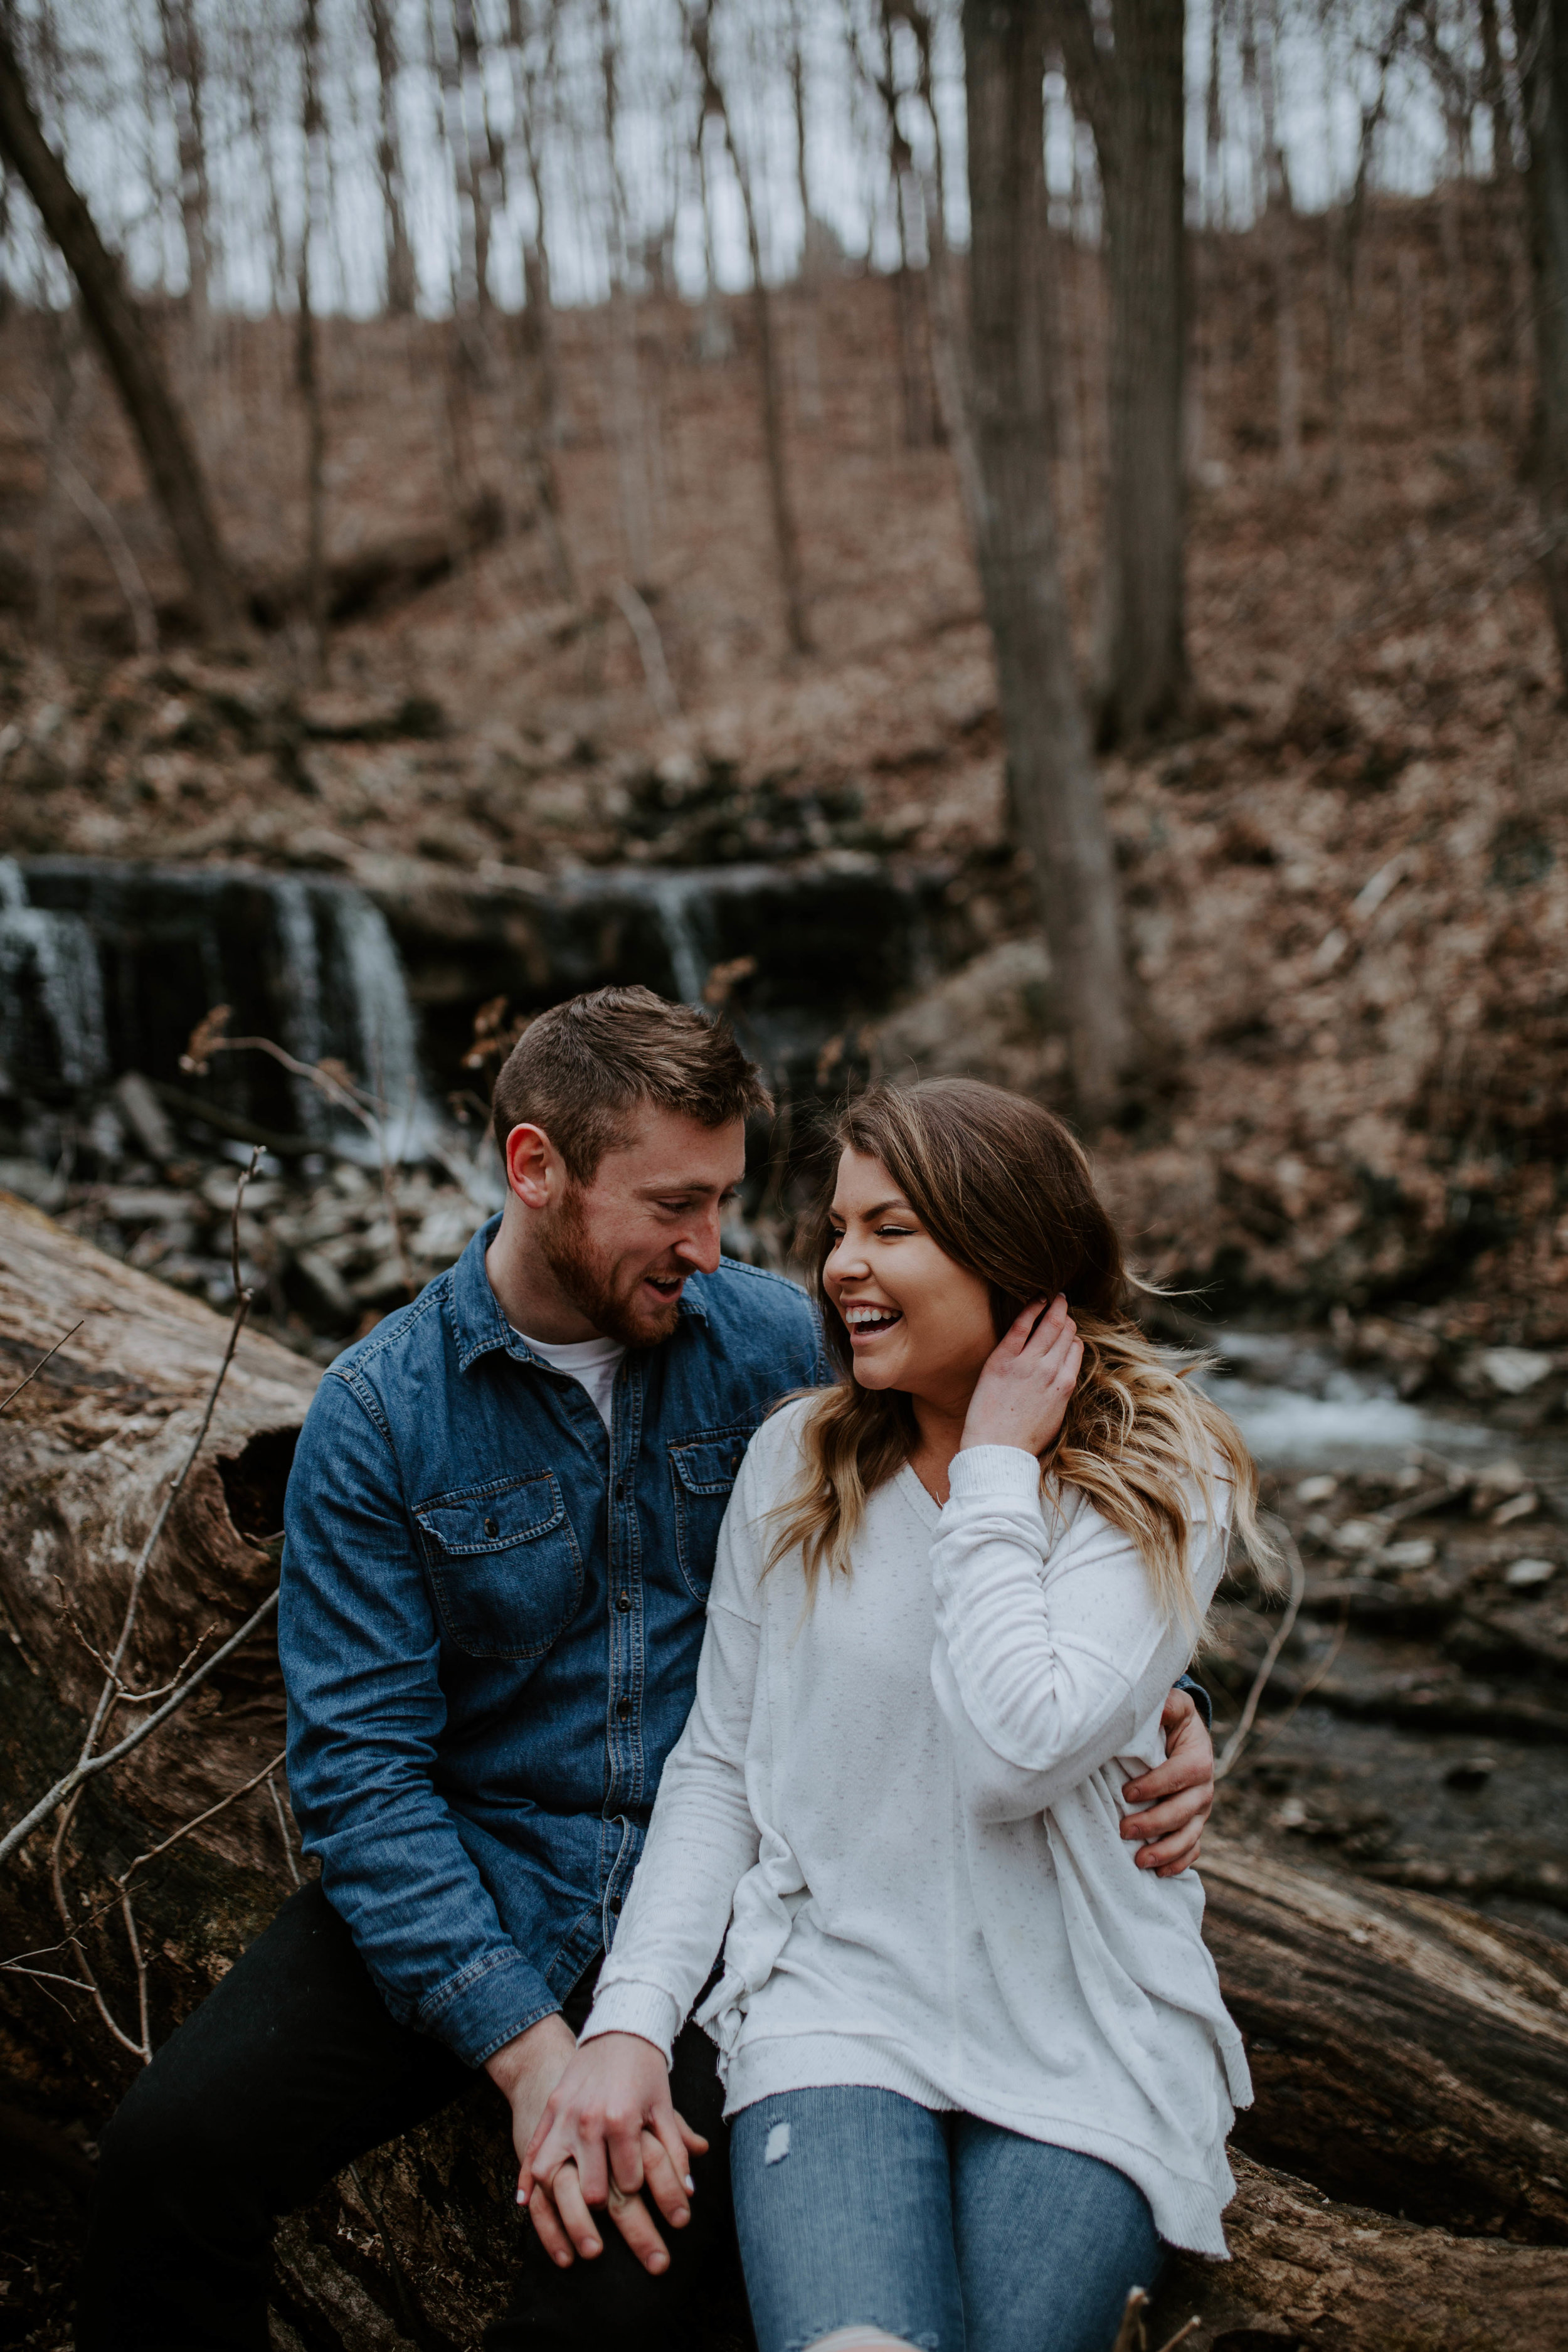 LIZA+EVAN-BLOOMINGTON-COUPLE-ENGAGEMENT-REAGANLYNNPHOTOGRAPHY-MUNCIE-INDIANAPOLIS-7.jpg